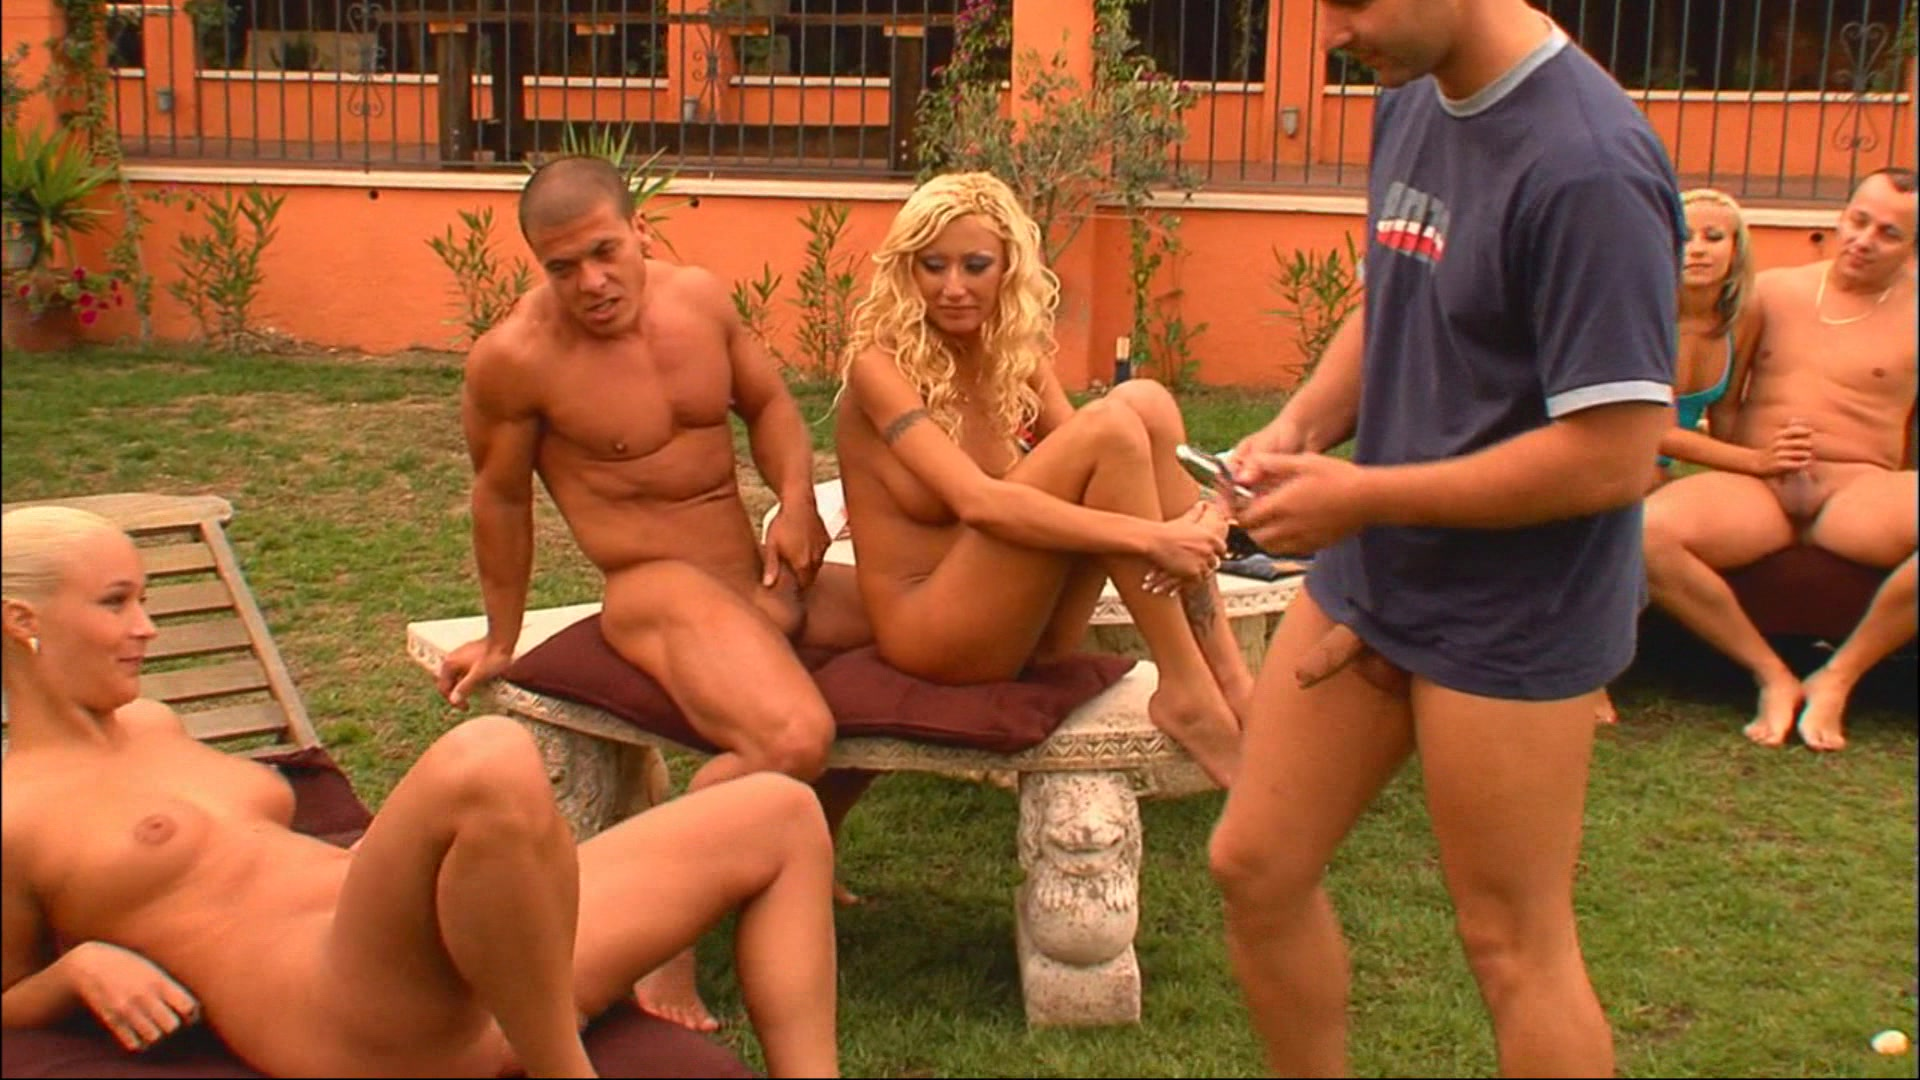 group blow job video